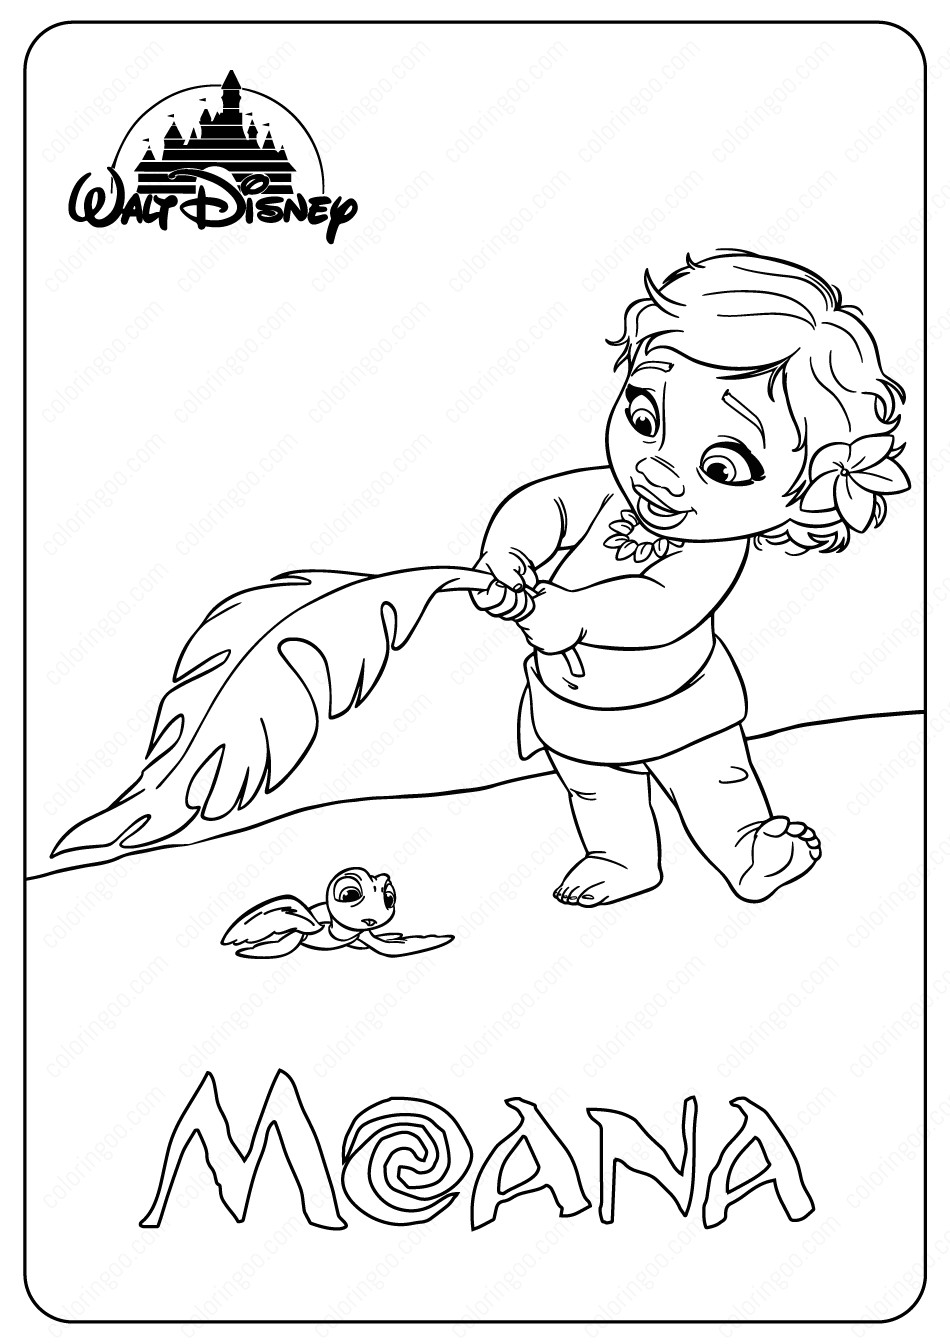 Moana Baby Coloring Pages  Printable Disney Baby Moana Coloring Pages